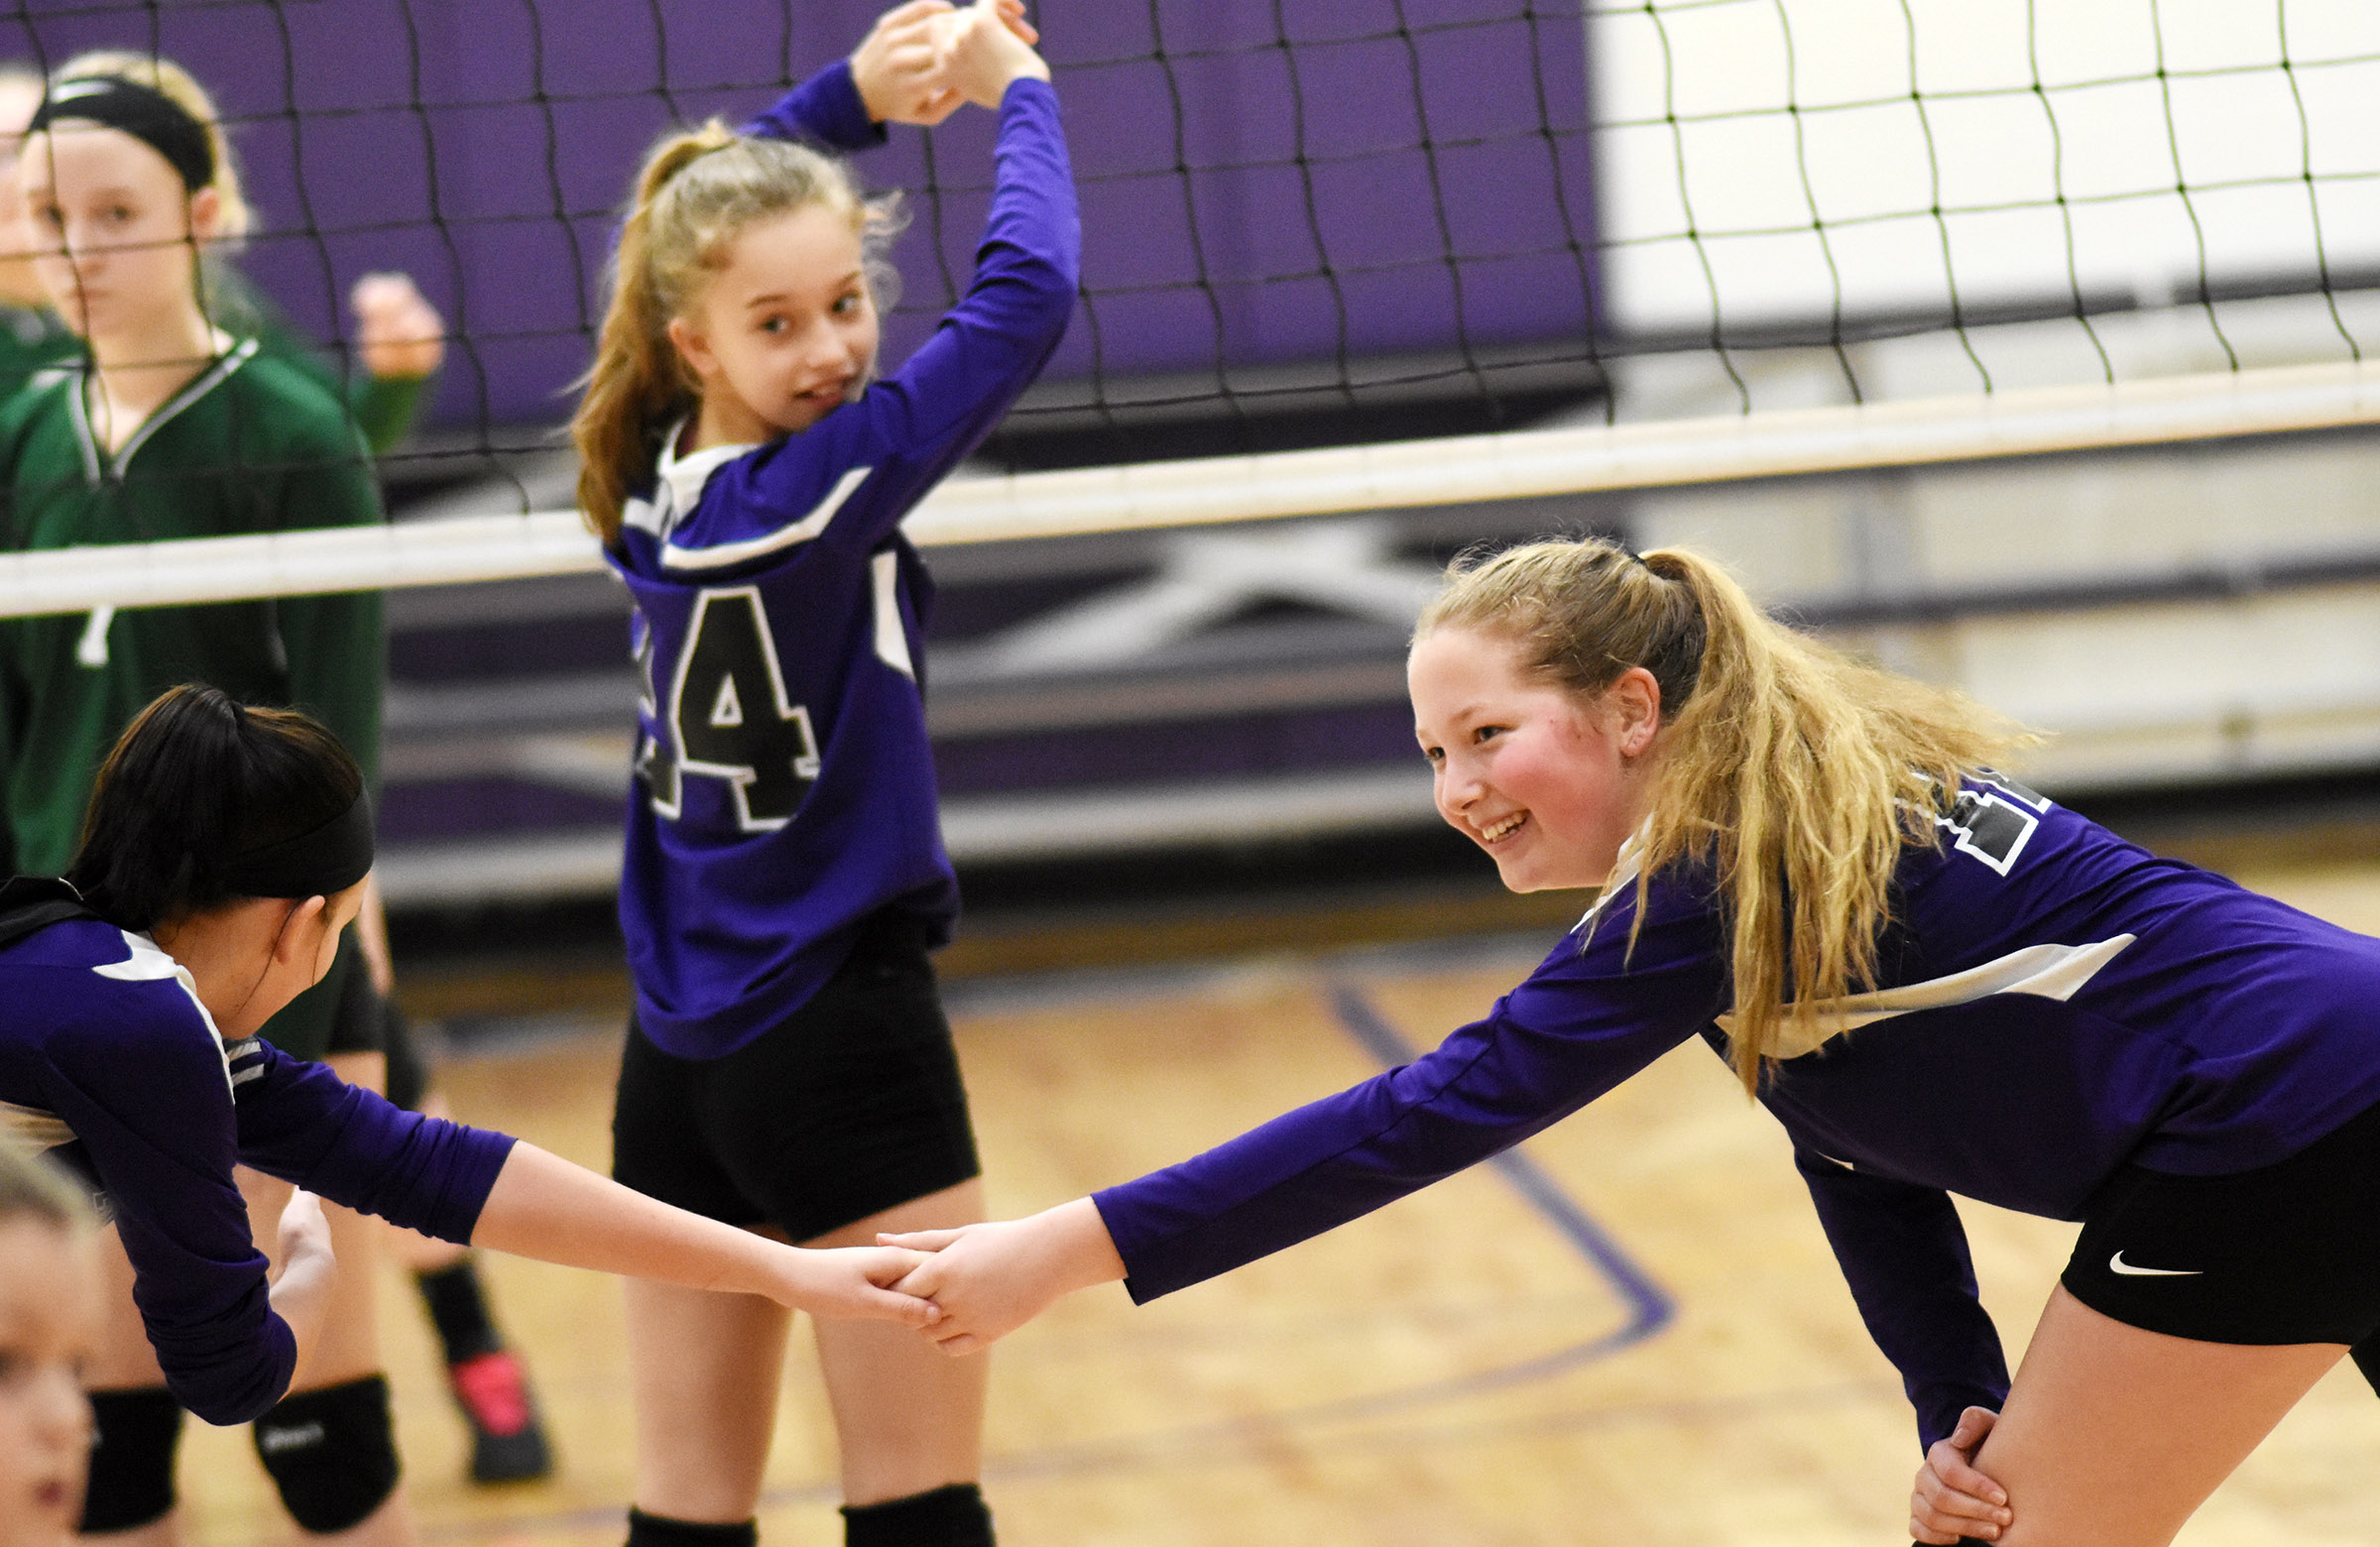 CMS sixth-grader Ava Hughes smiles as her team serves the ball.